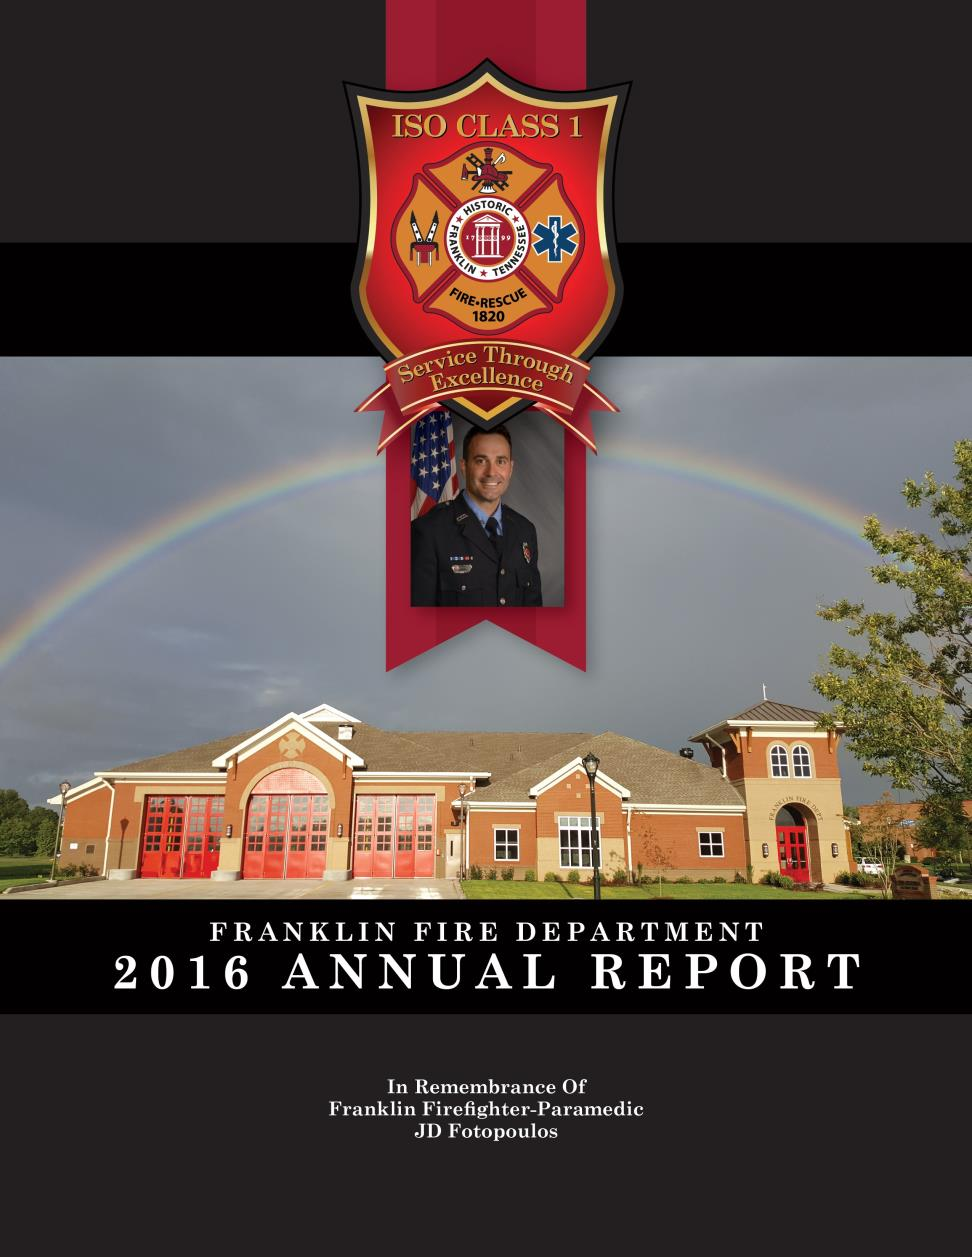 2016 Franklin Fire Department Annual Report